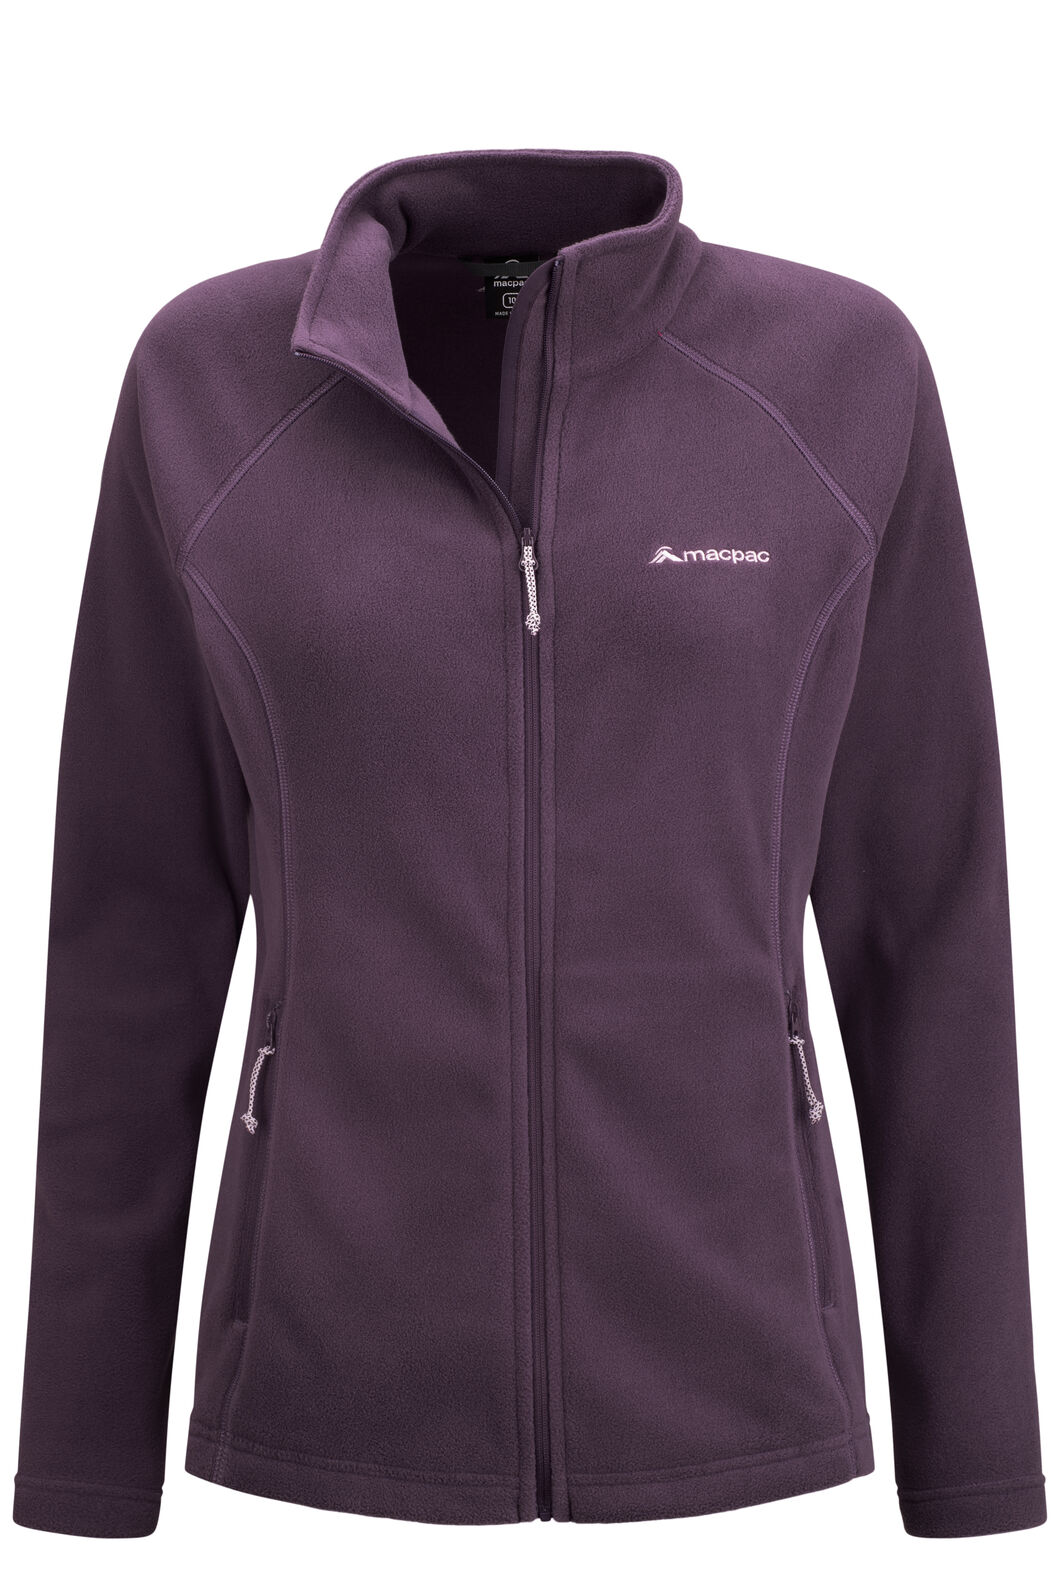 Macpac Tui Polartec® Micro Fleece® Jacket — Women's, Nightshade, hi-res